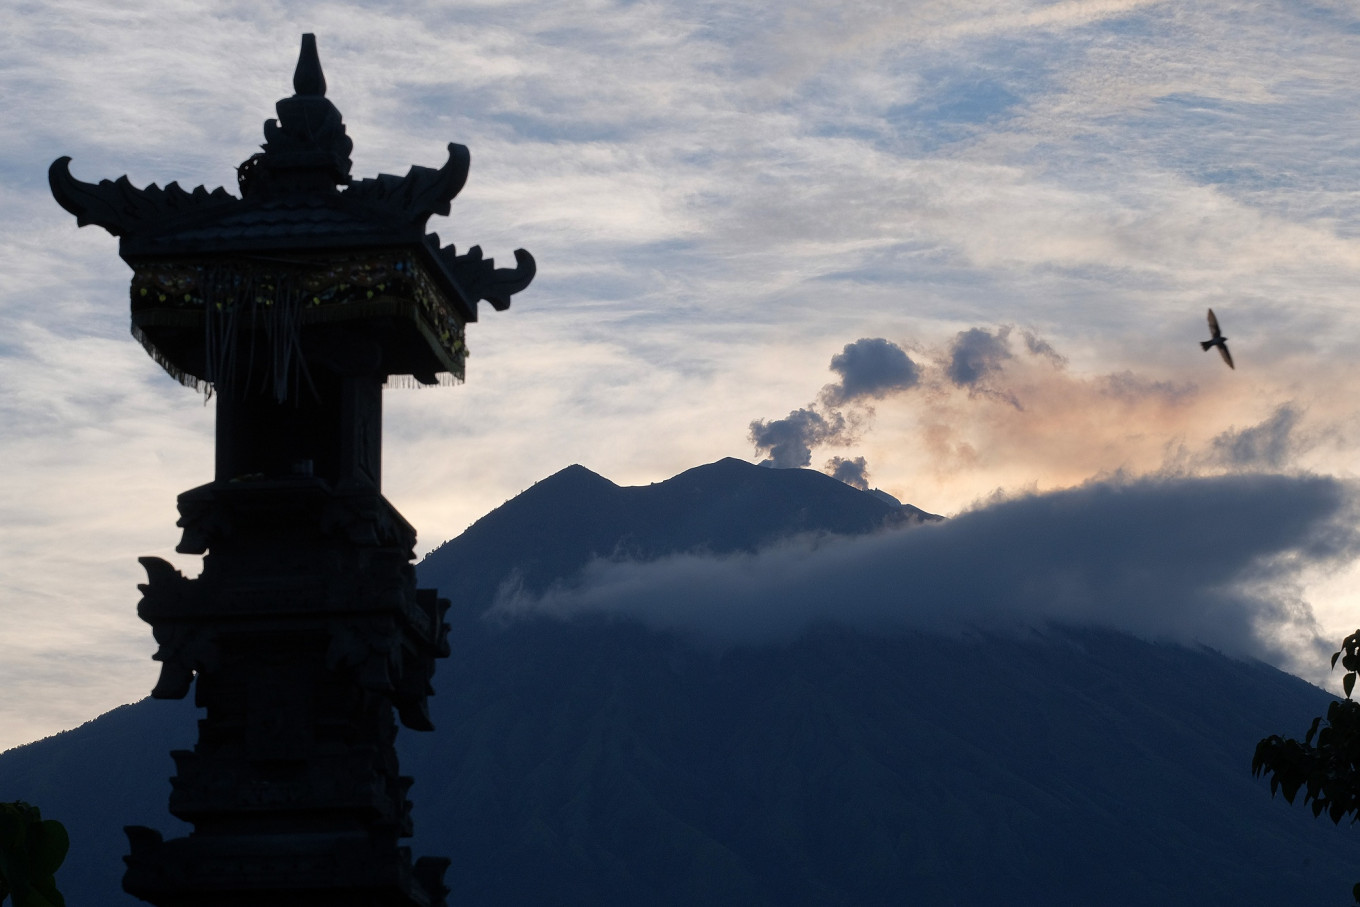 Dutch, Norwegian nationals rescued after getting lost on rumbling Bali volcano